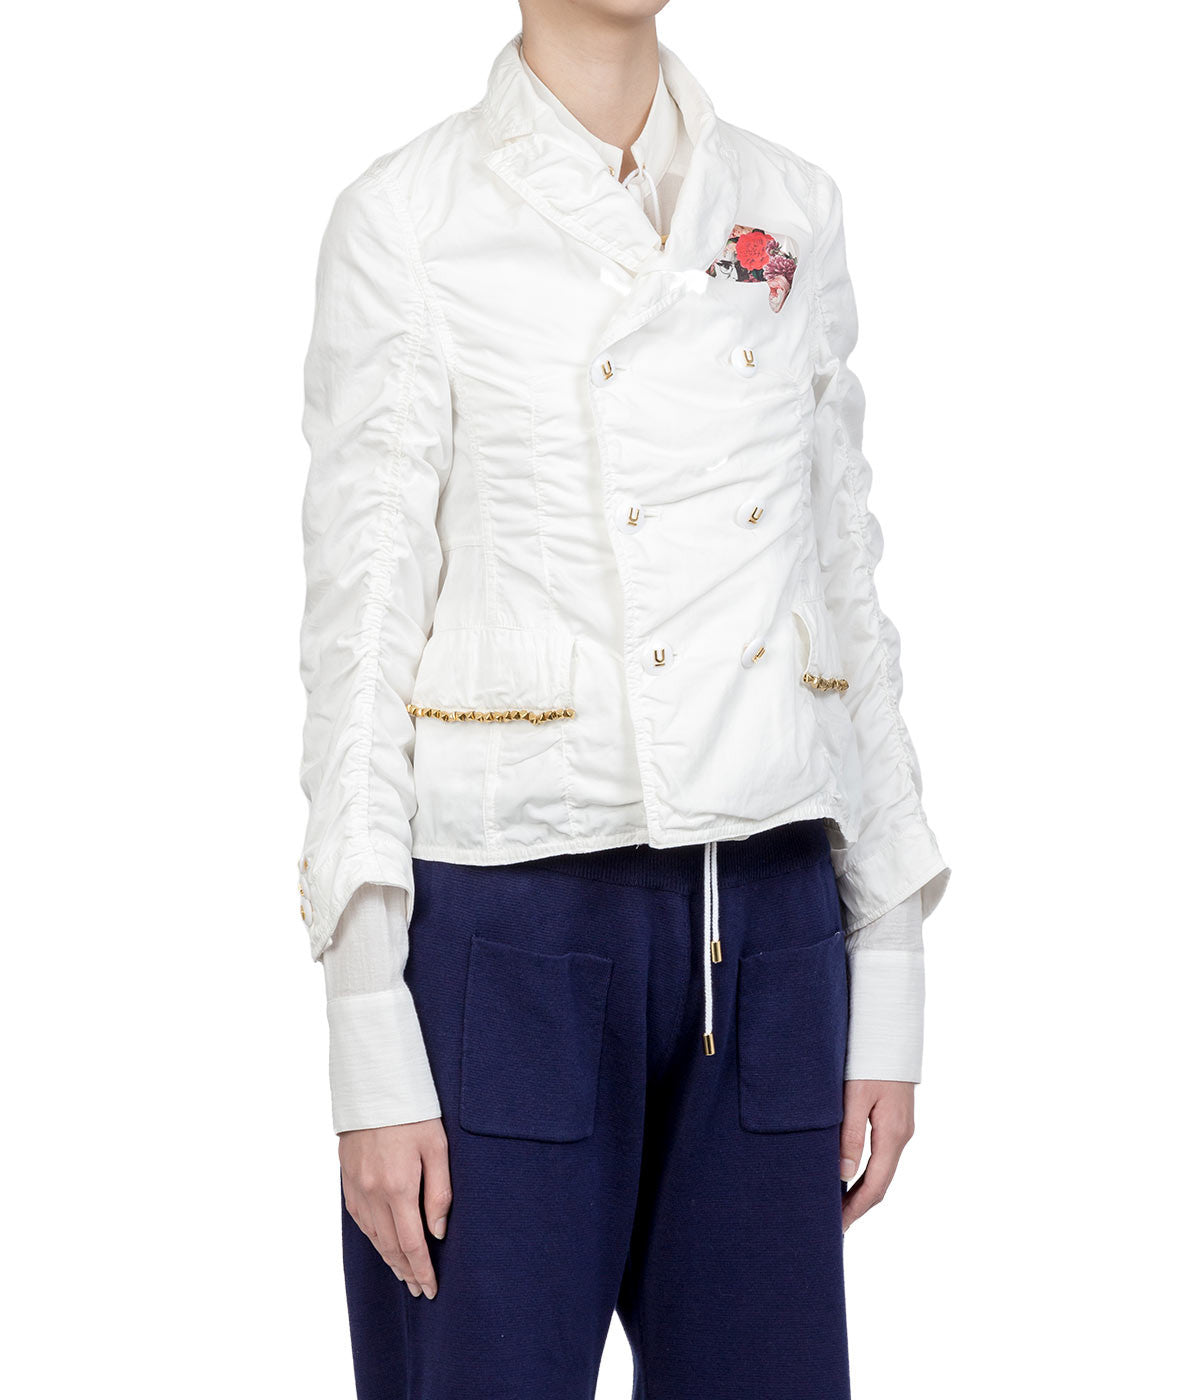 White Cut-out Double Breast Jacket